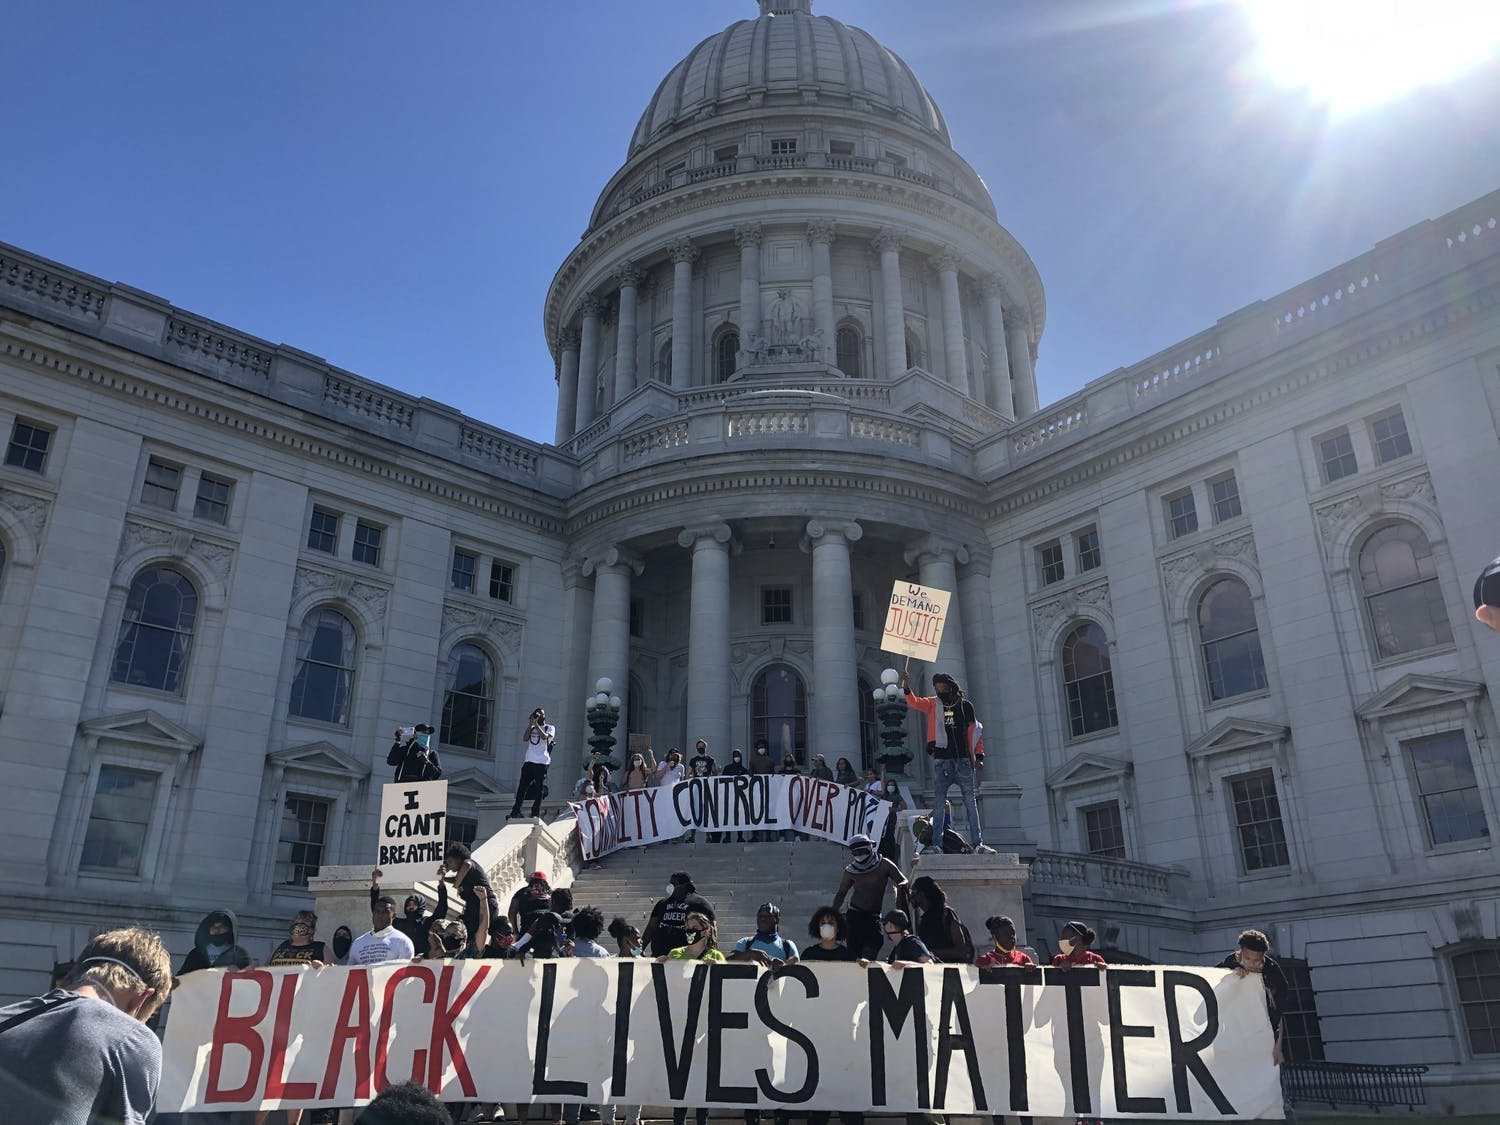 The protest marched all the way from the capital to Williamson Street, back to the capital for this dramatic moment. 4:13 p.m.